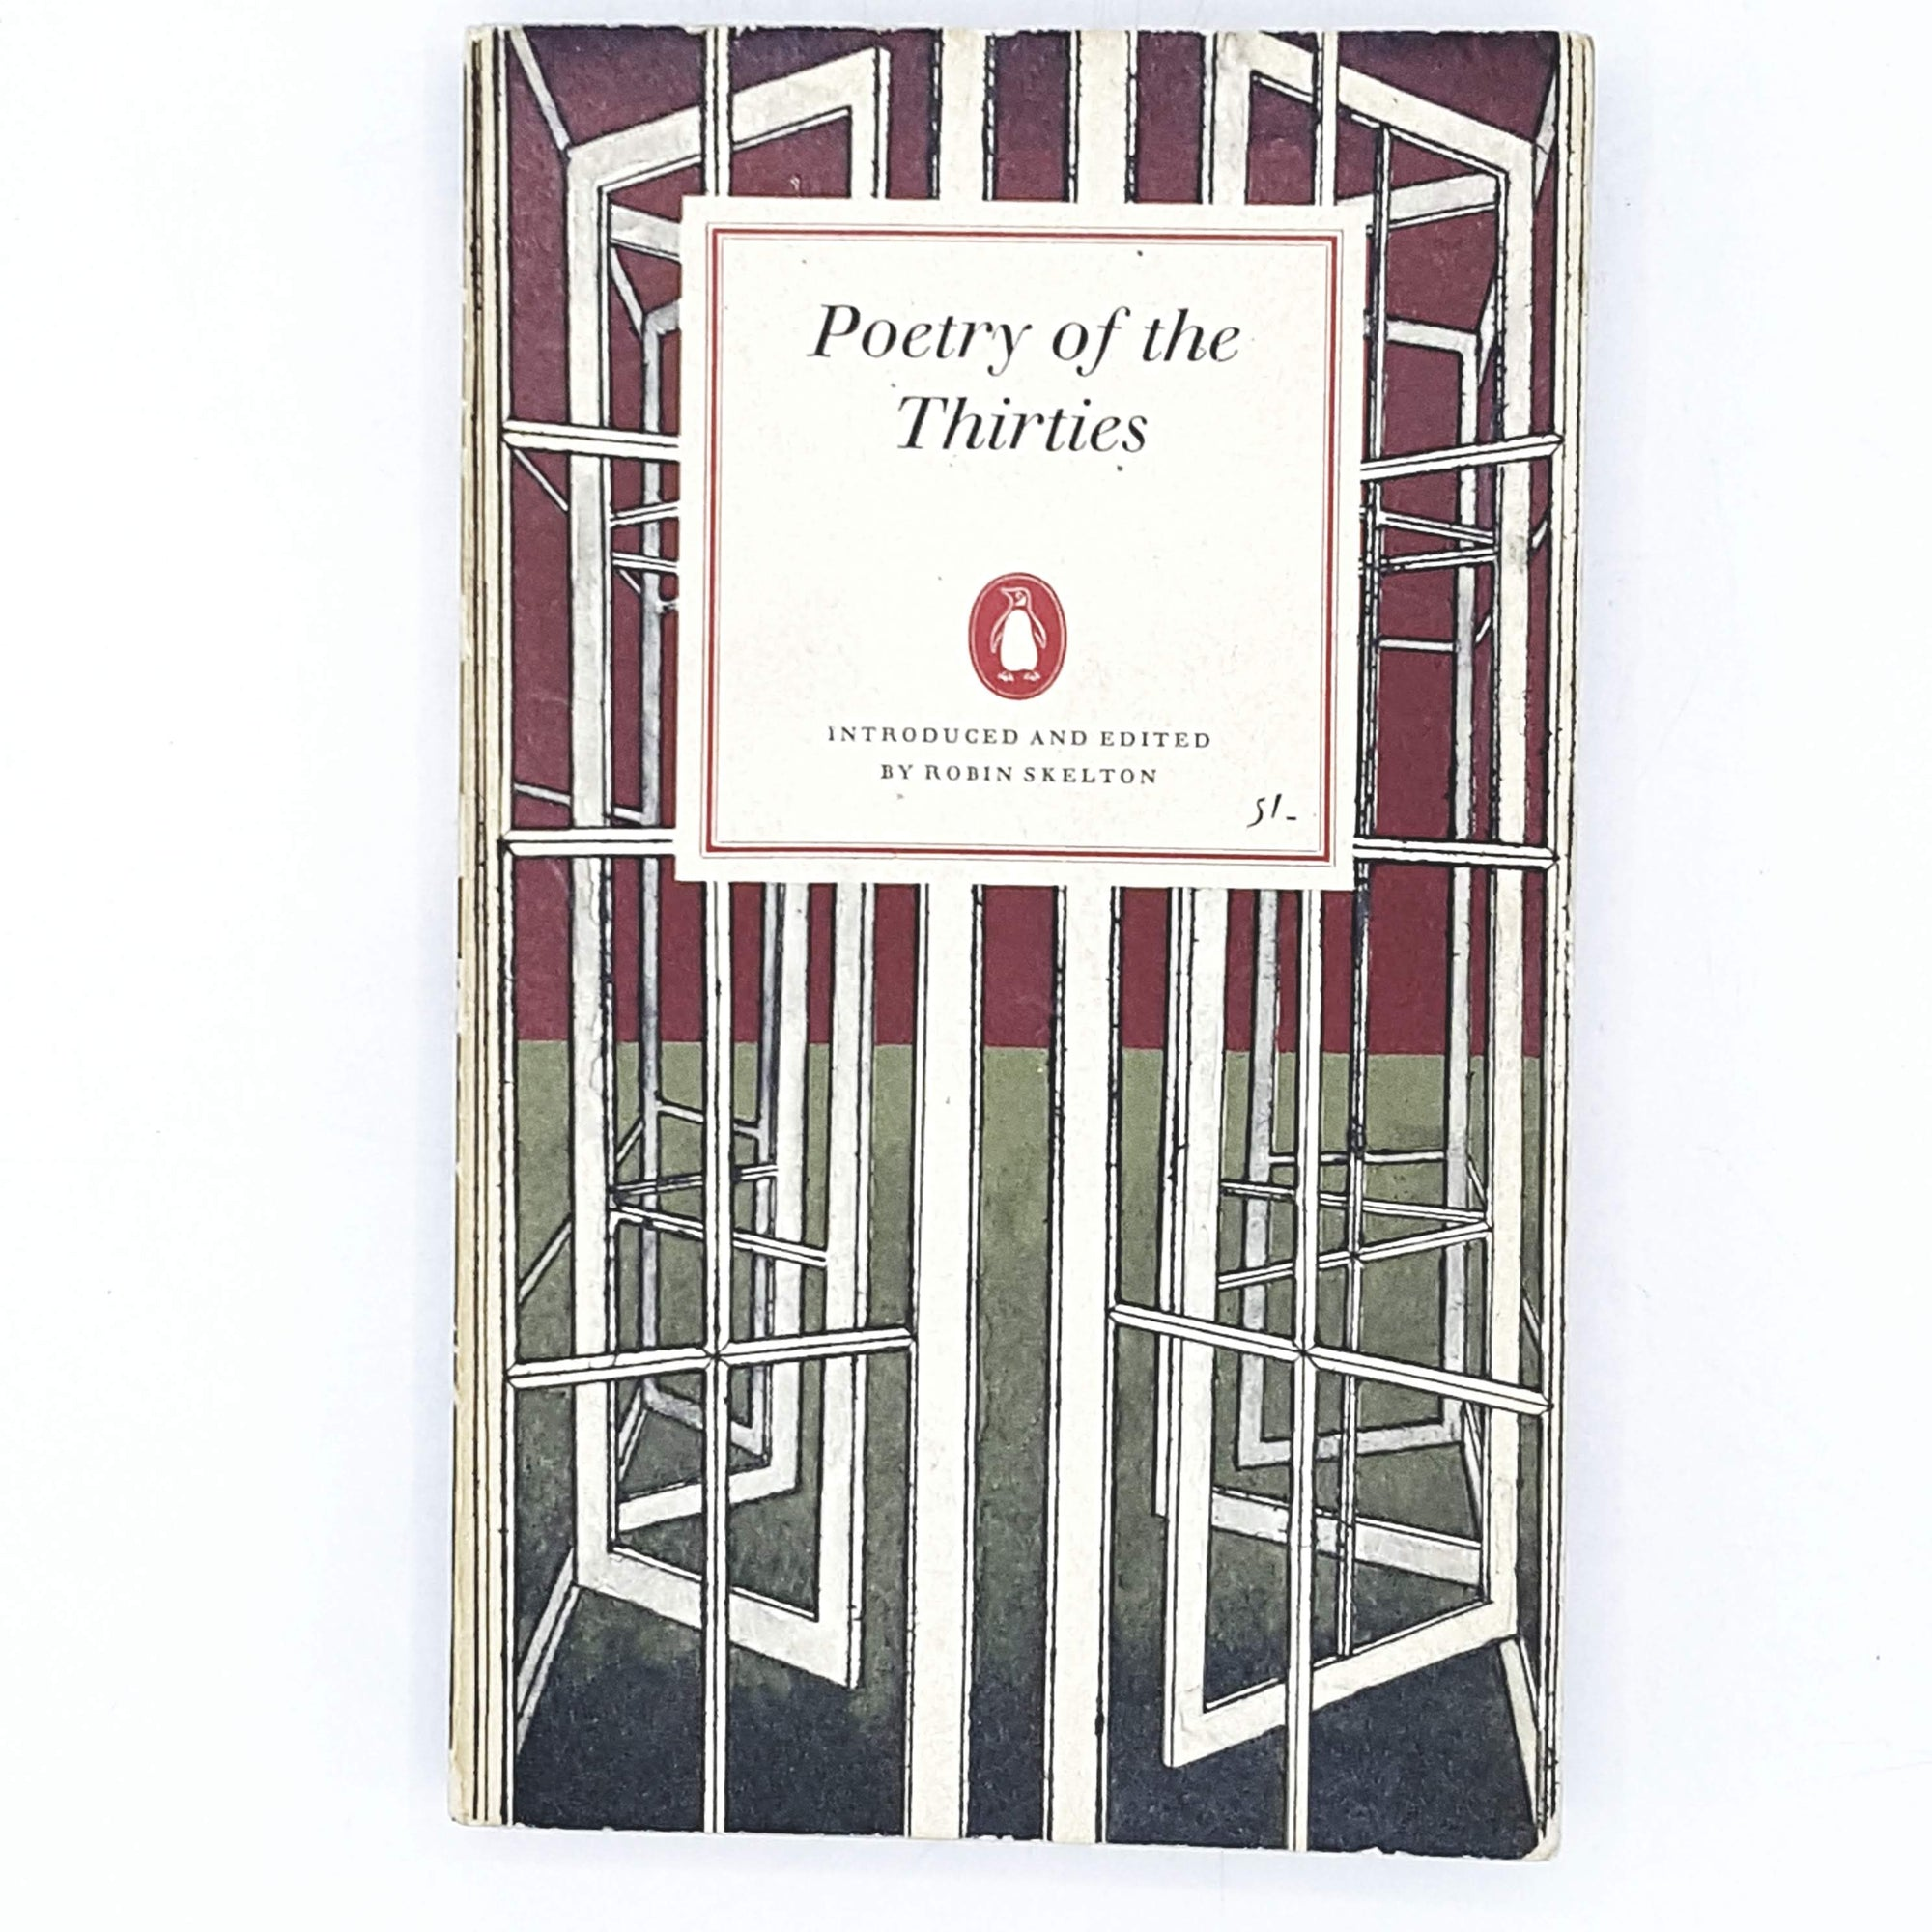 First Edition Penguin Poetry of the Thirties 1964